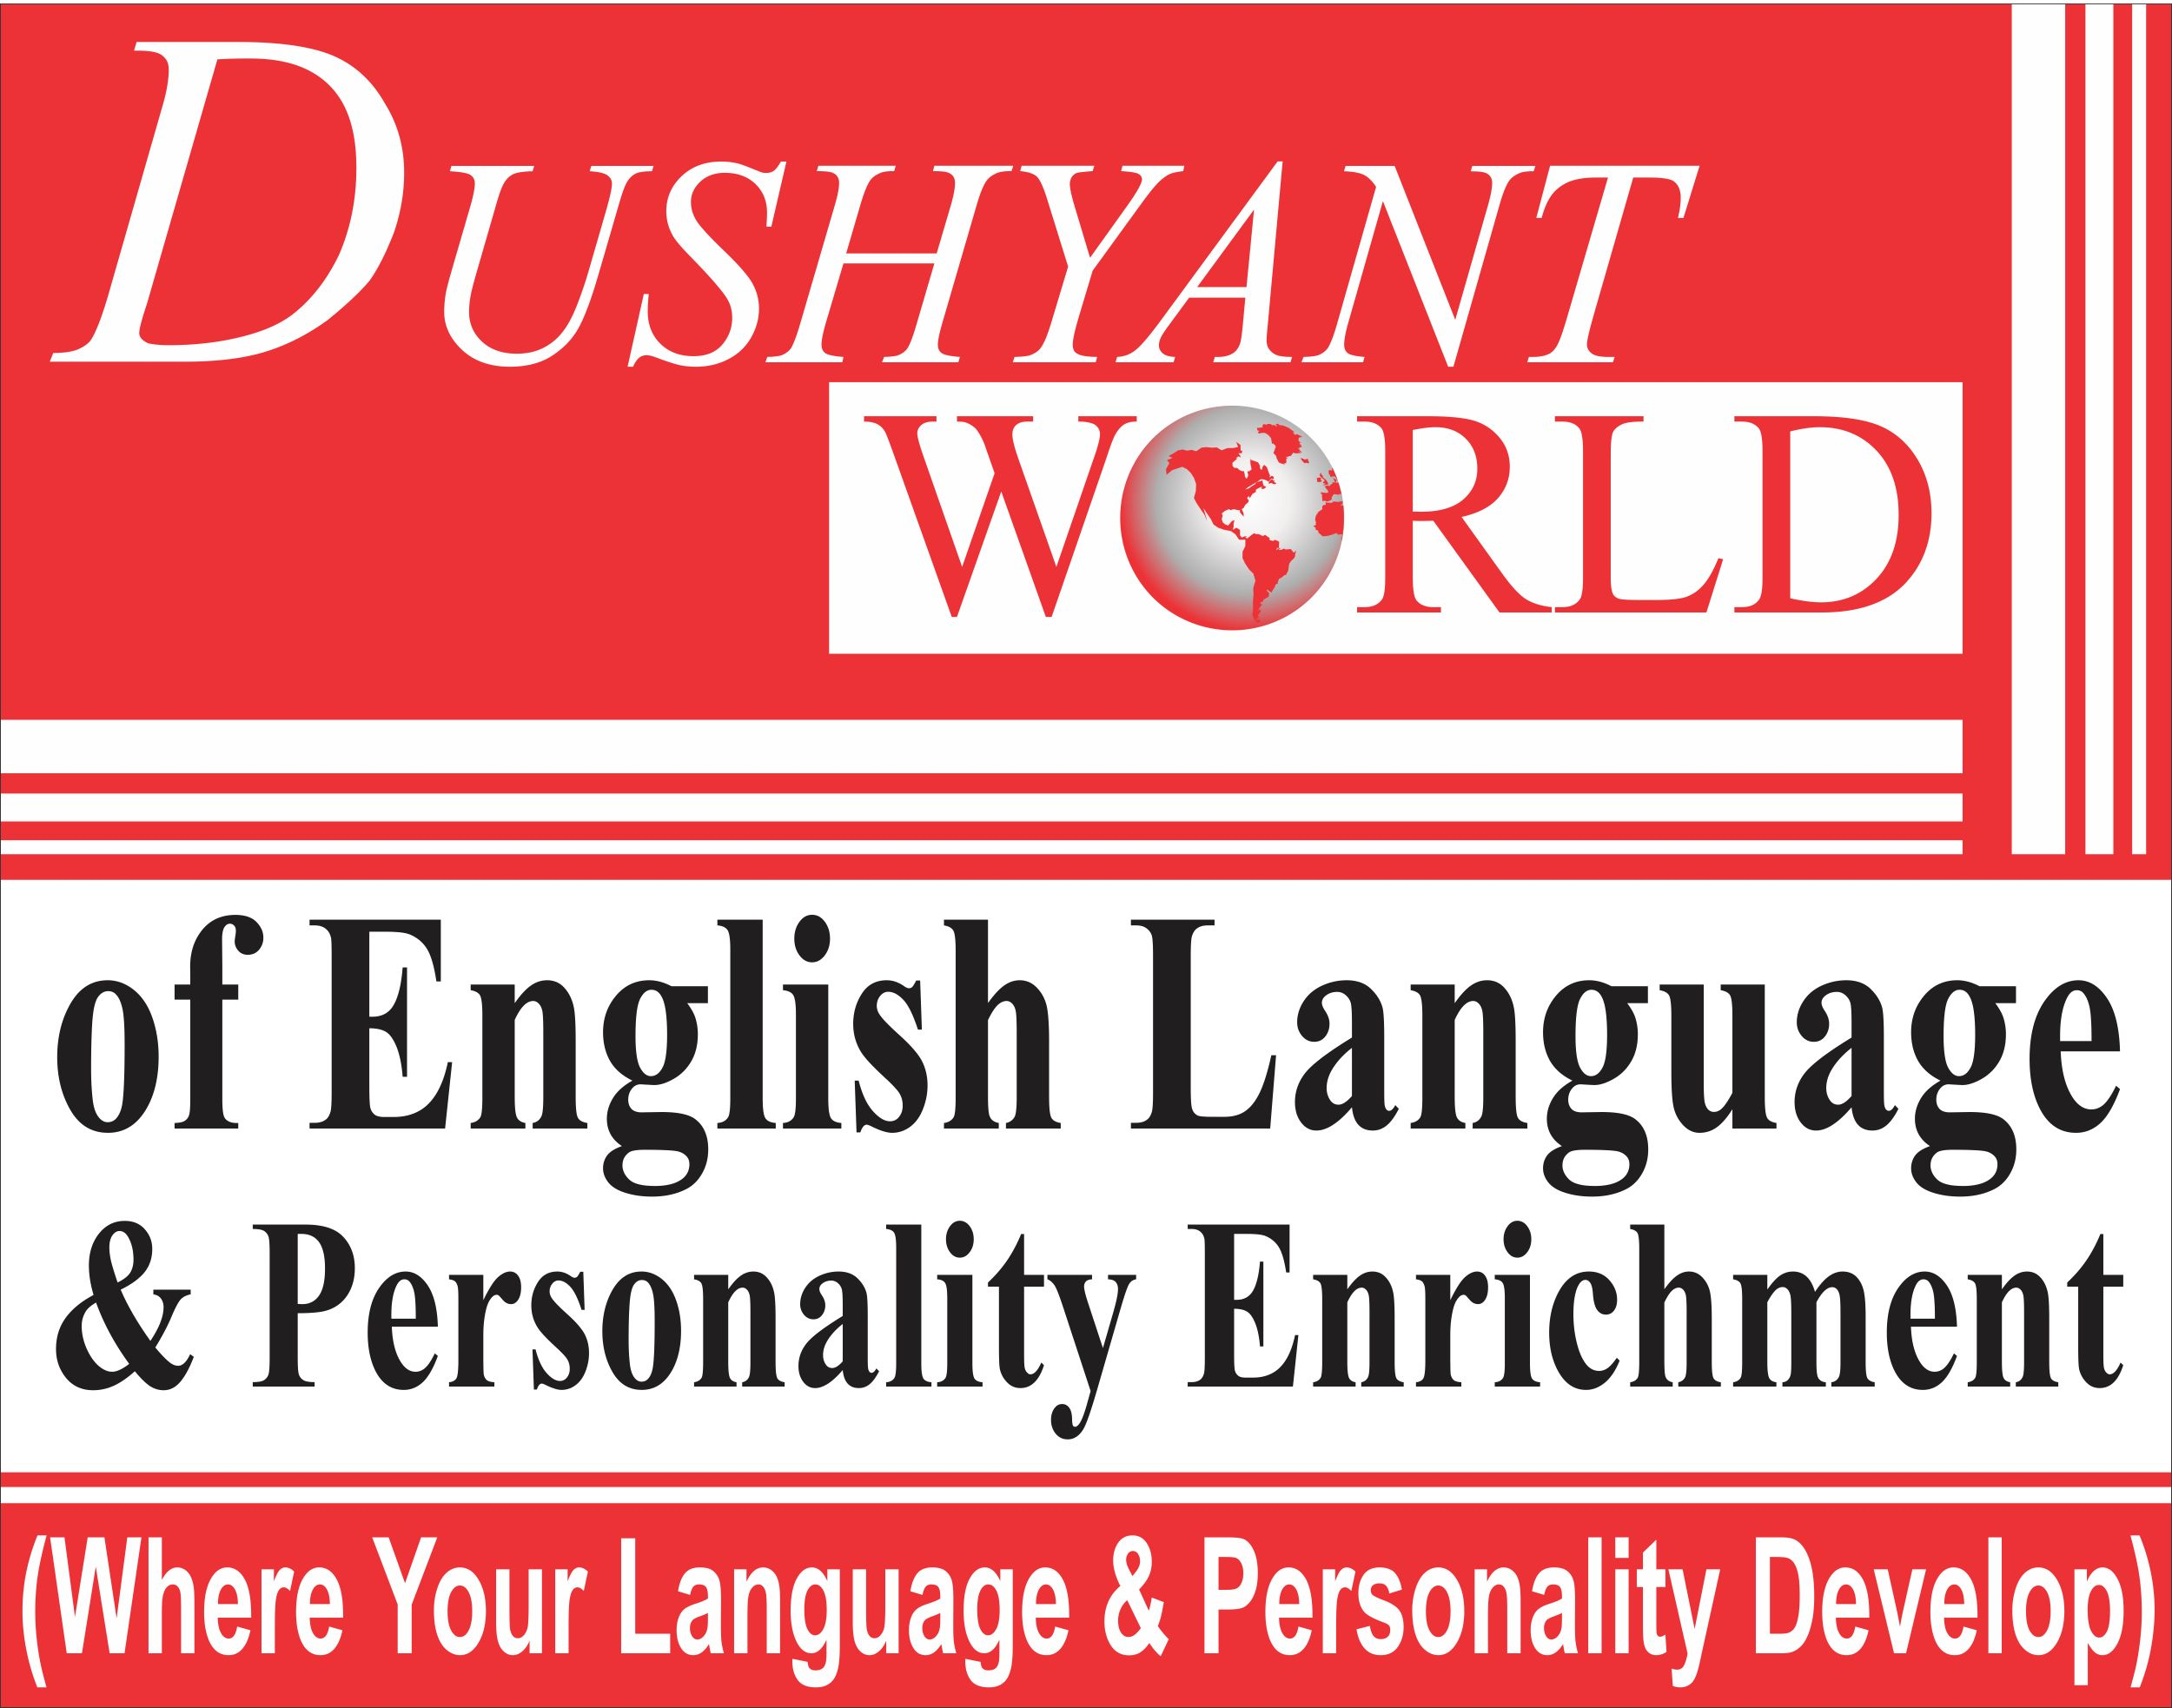 Dushyant World of English Language and Personality Enrichment